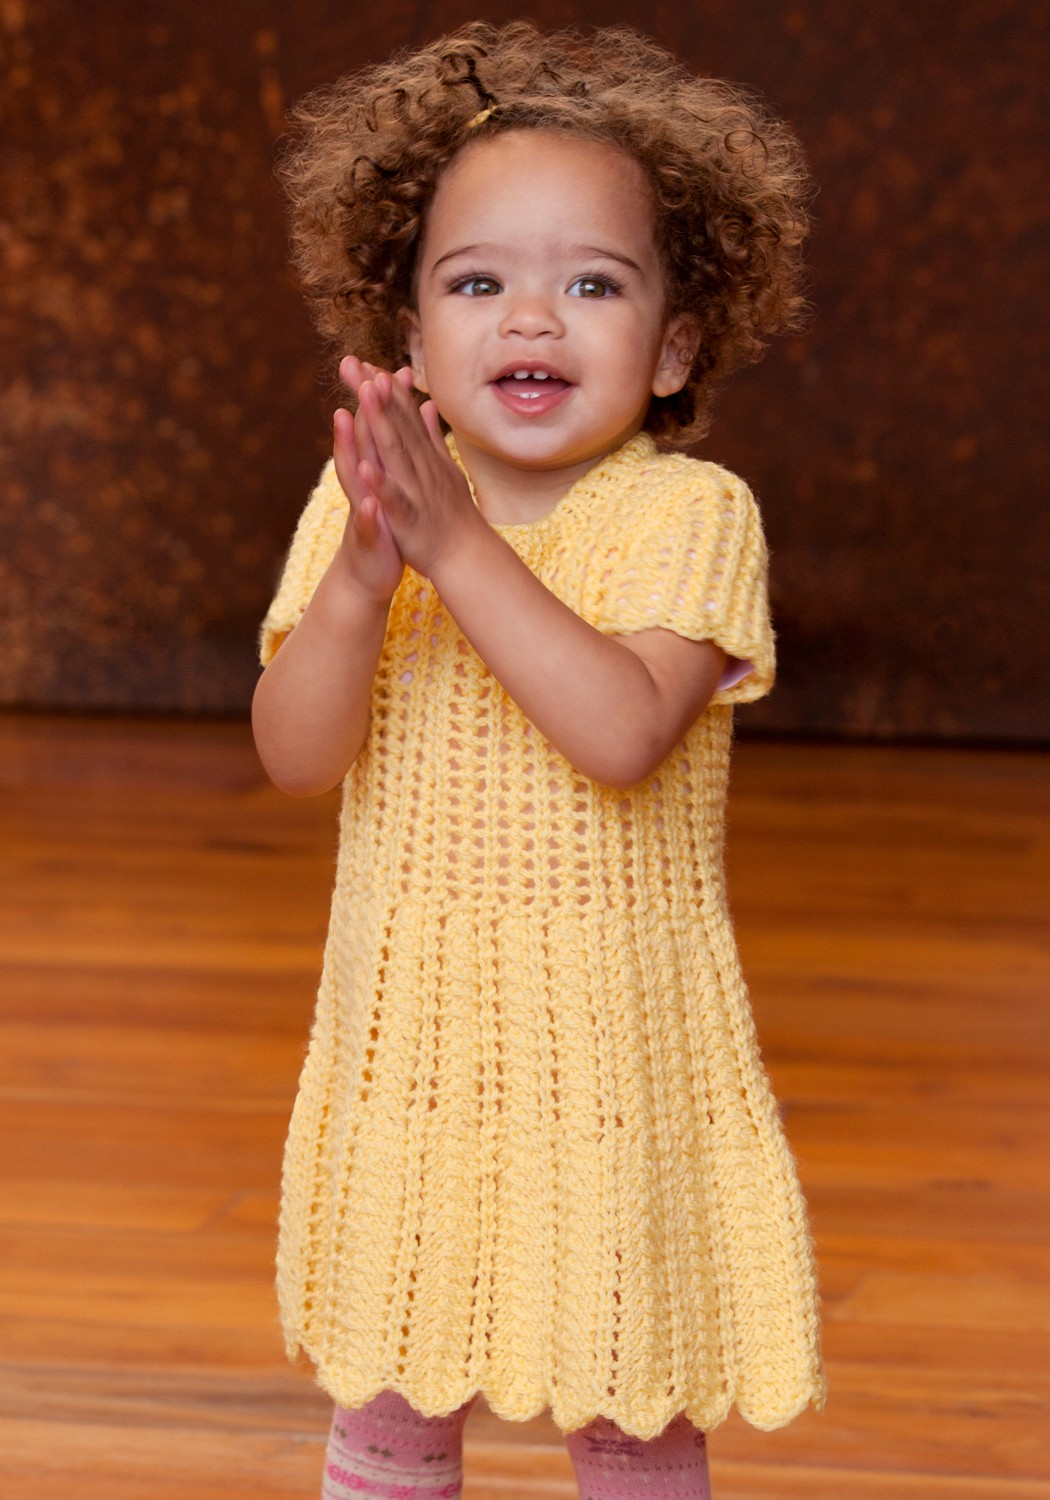 Knitting Patterns Baby Dress images